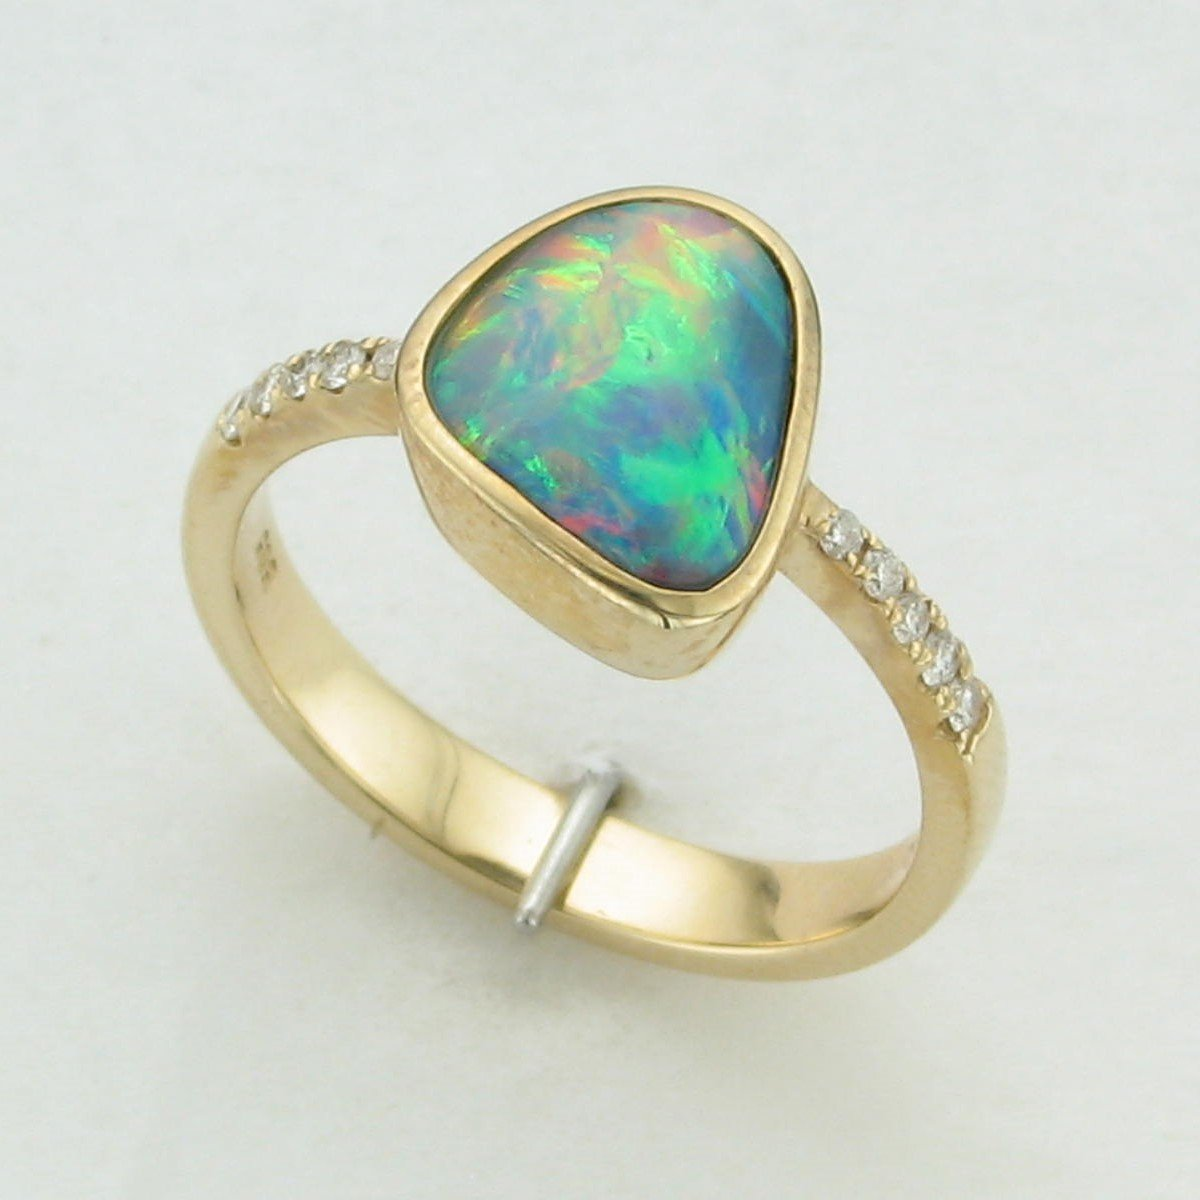 2.30ct Opal Doublet and Diamond Ring set in 14K Yellow Gold